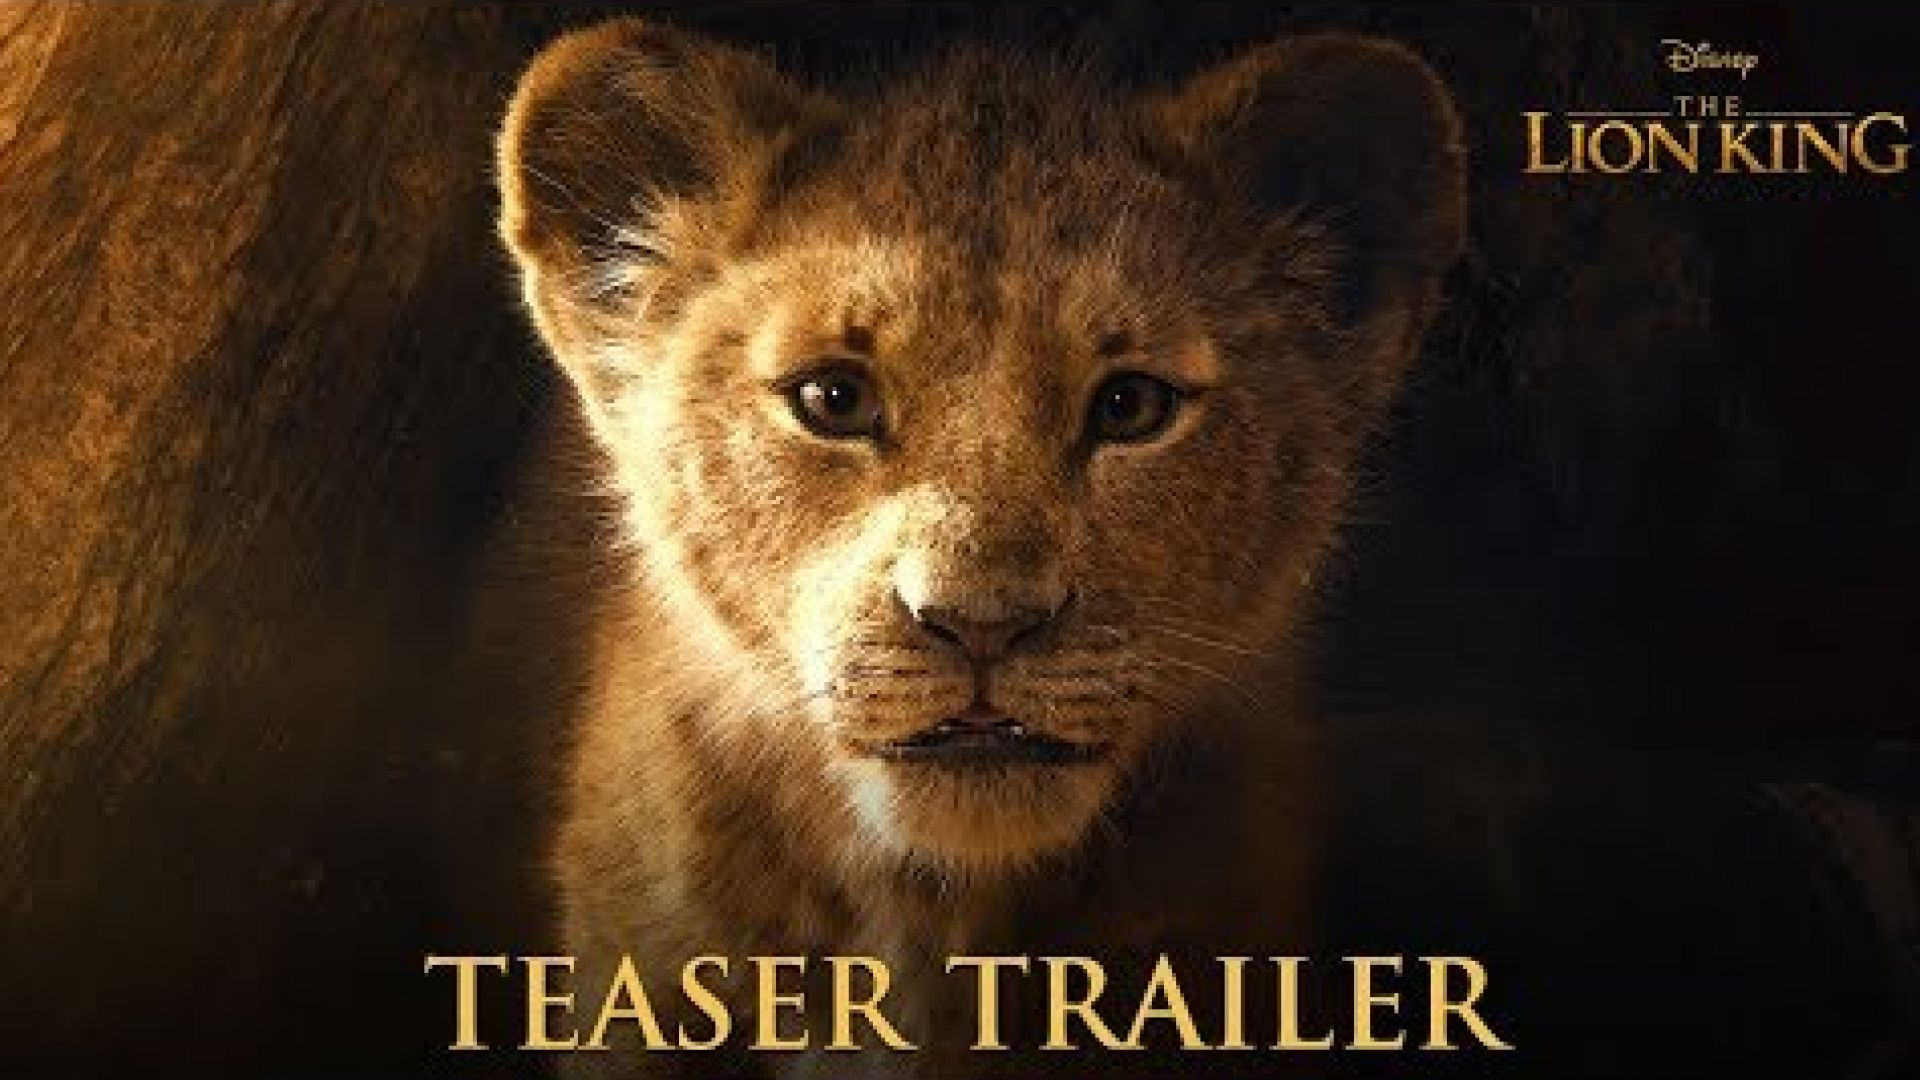 'The Lion King' 2019 Teaser Trailer